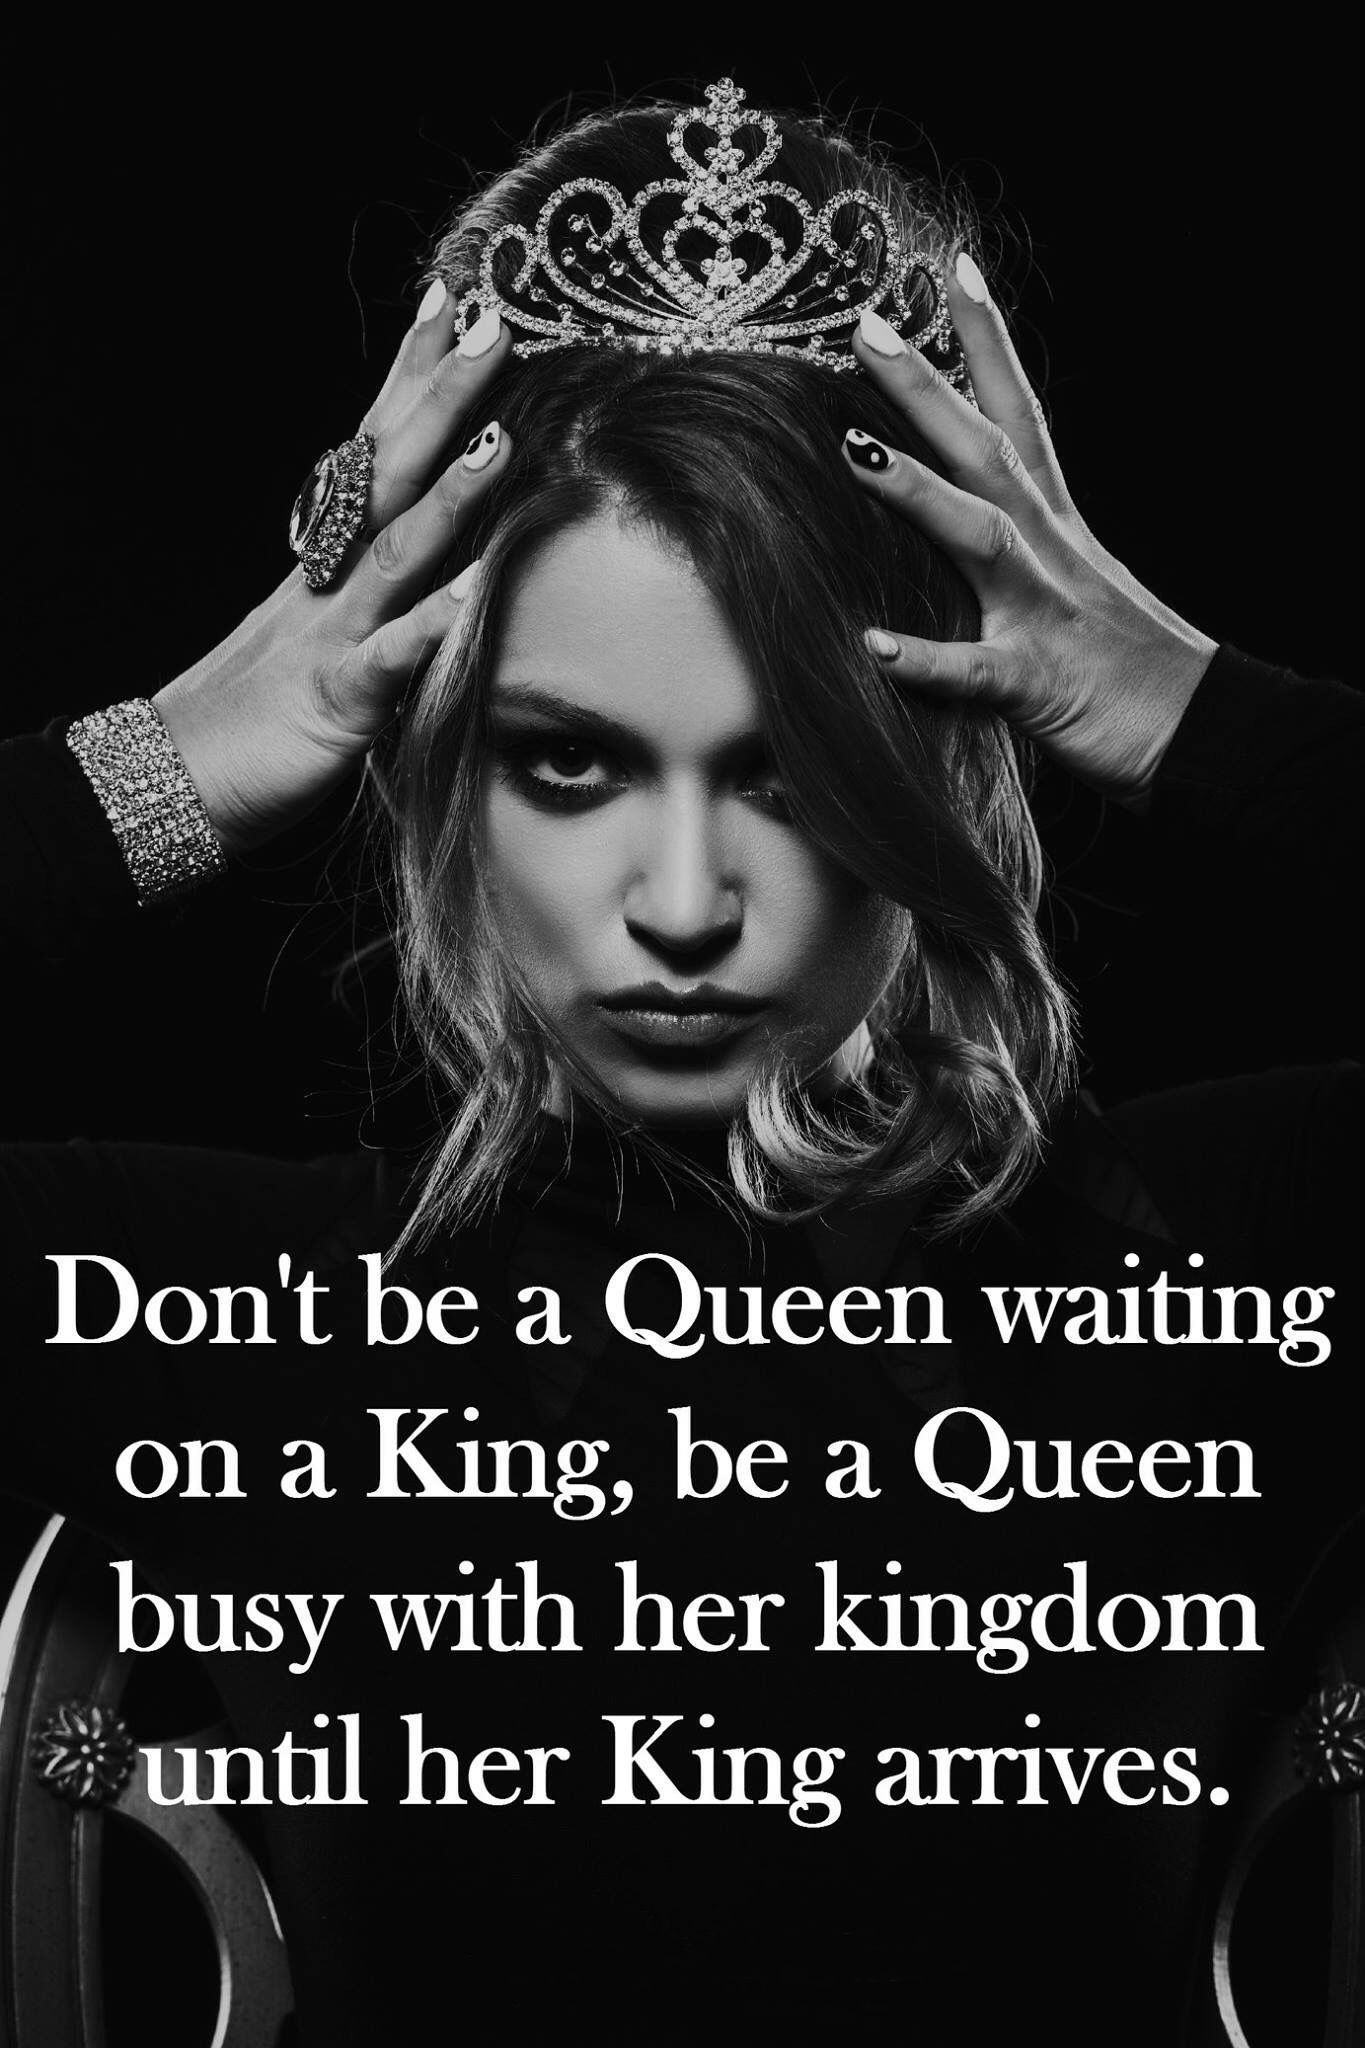 King And Queen Love Quotes Pincheri Bosworth On Princess Power  Pinterest  Girl Power